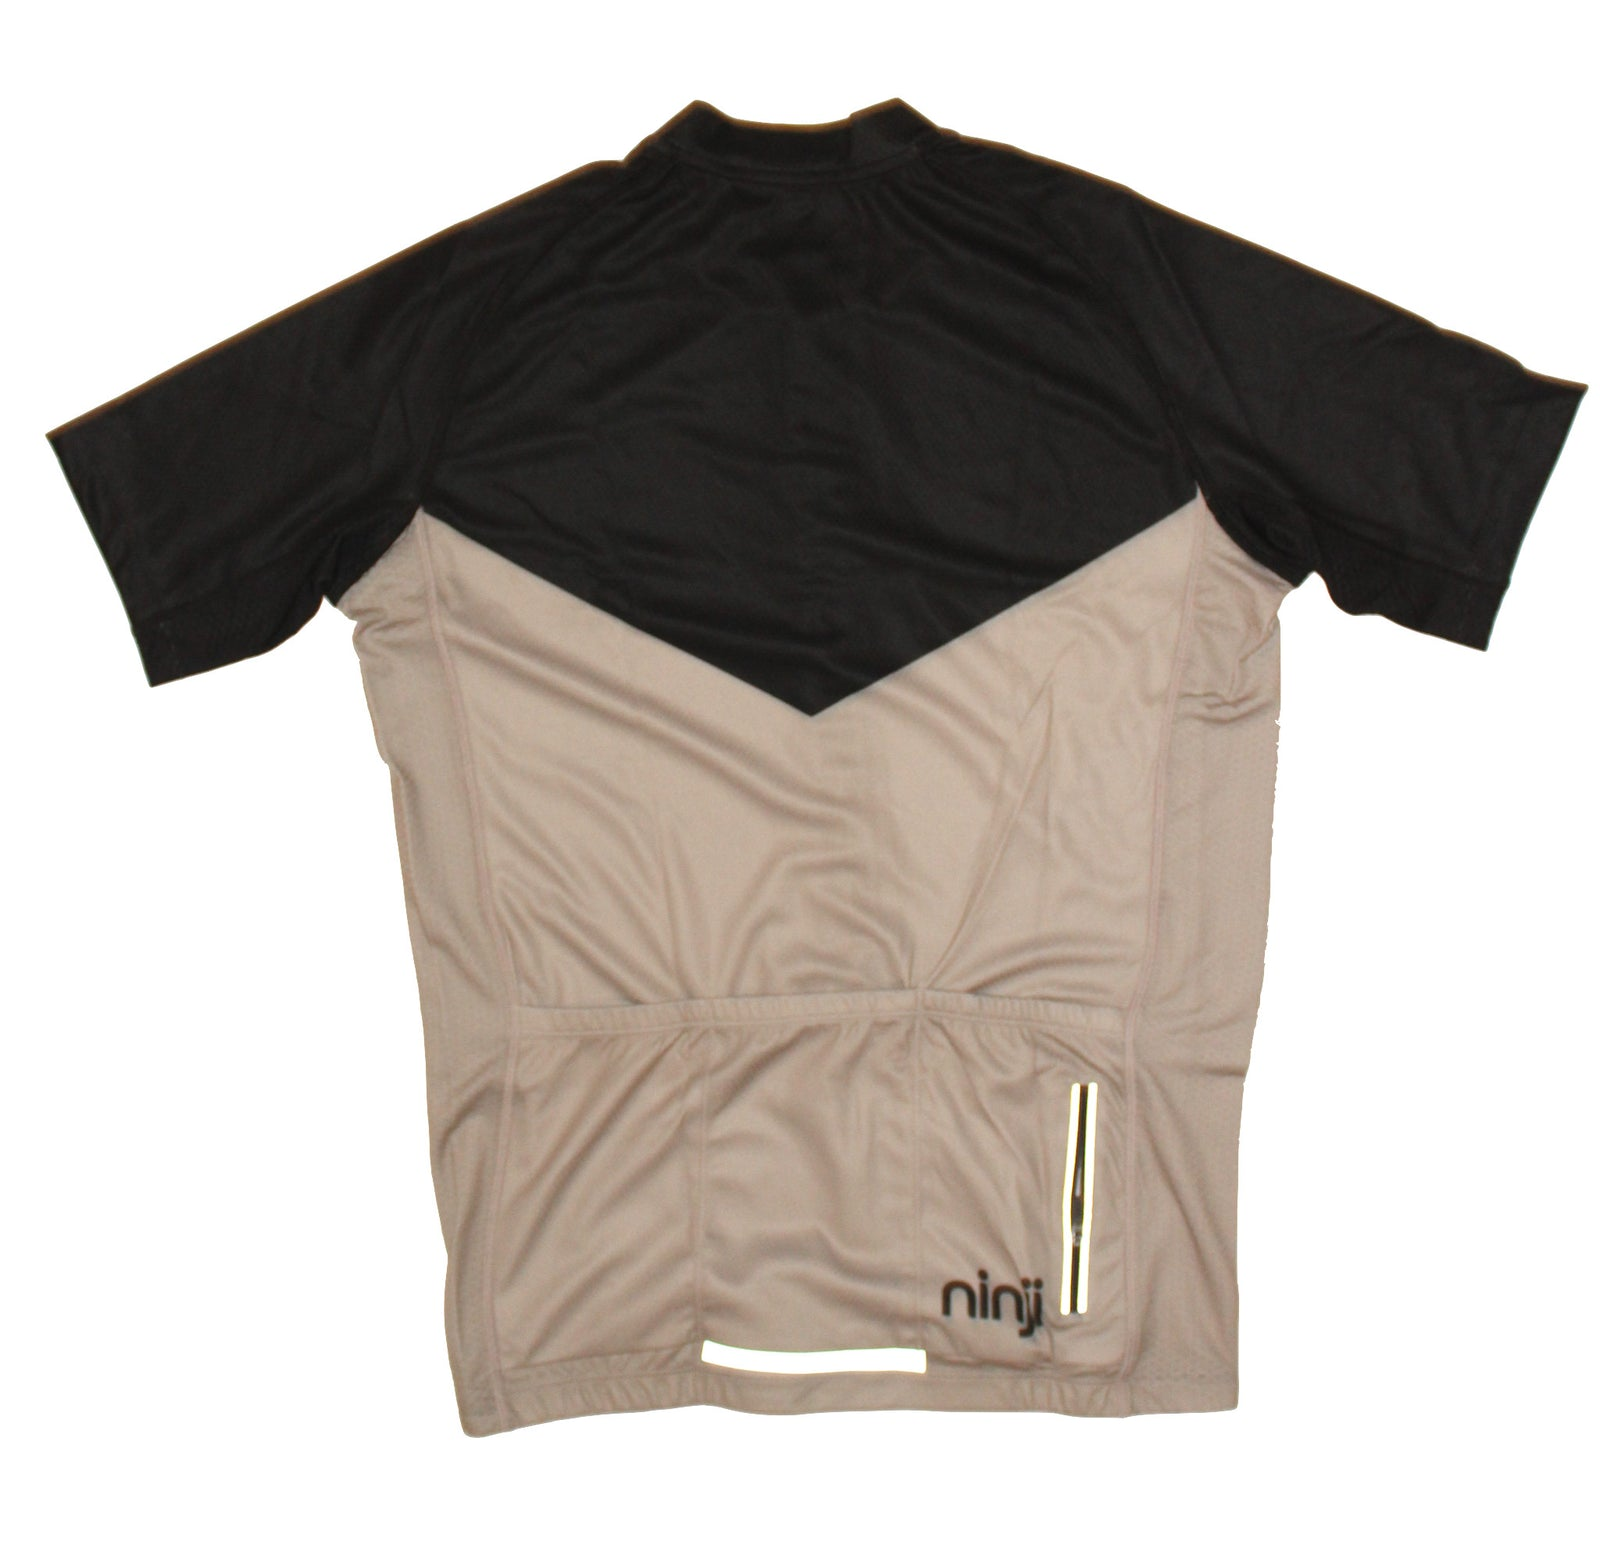 MENS SS JERSEY - BLACK GREY V